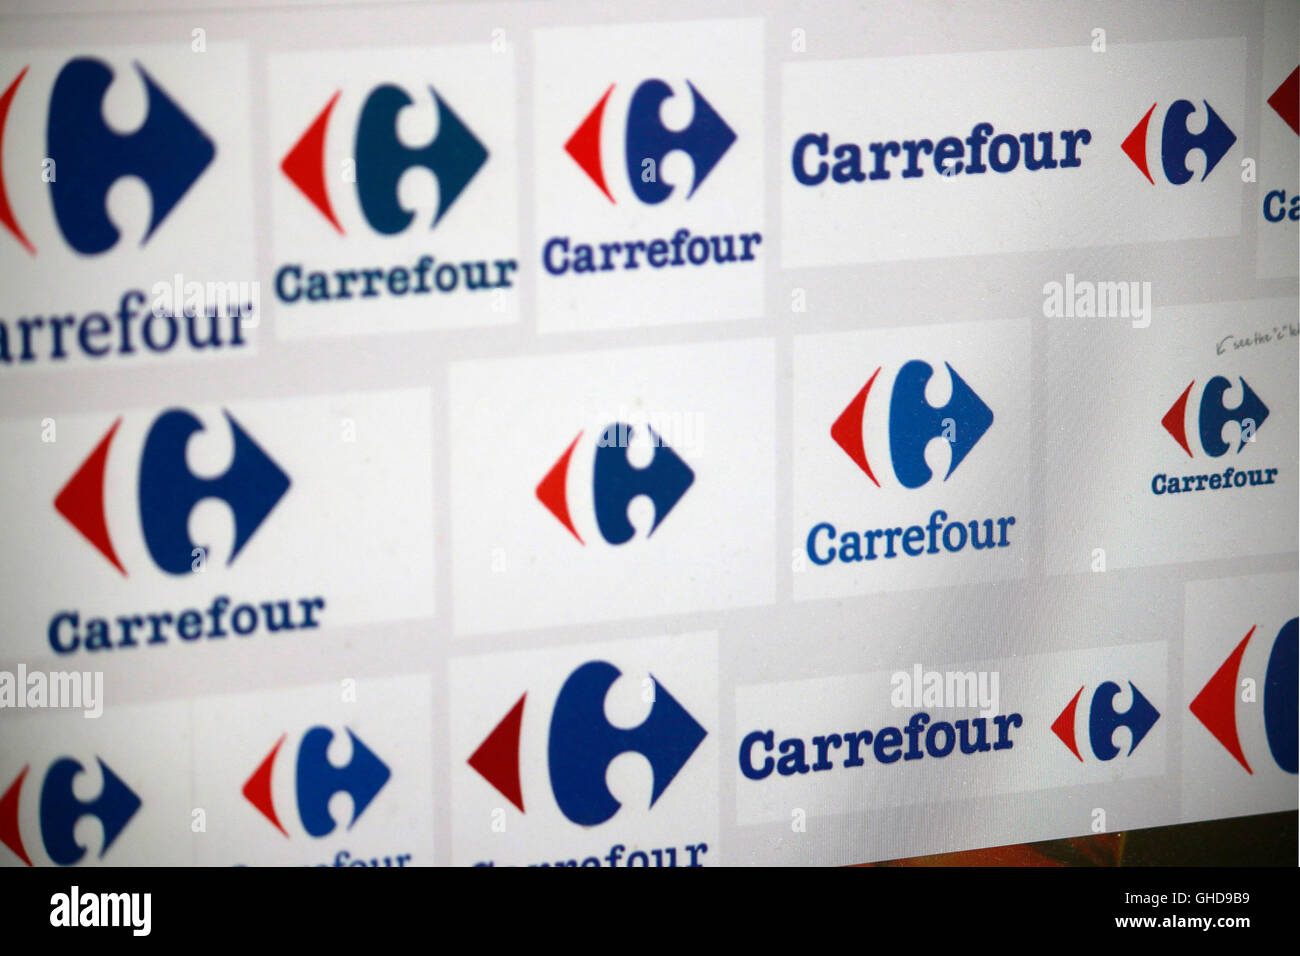 https www alamy com stock photo loge der marke carrefour berlin 114004109 html